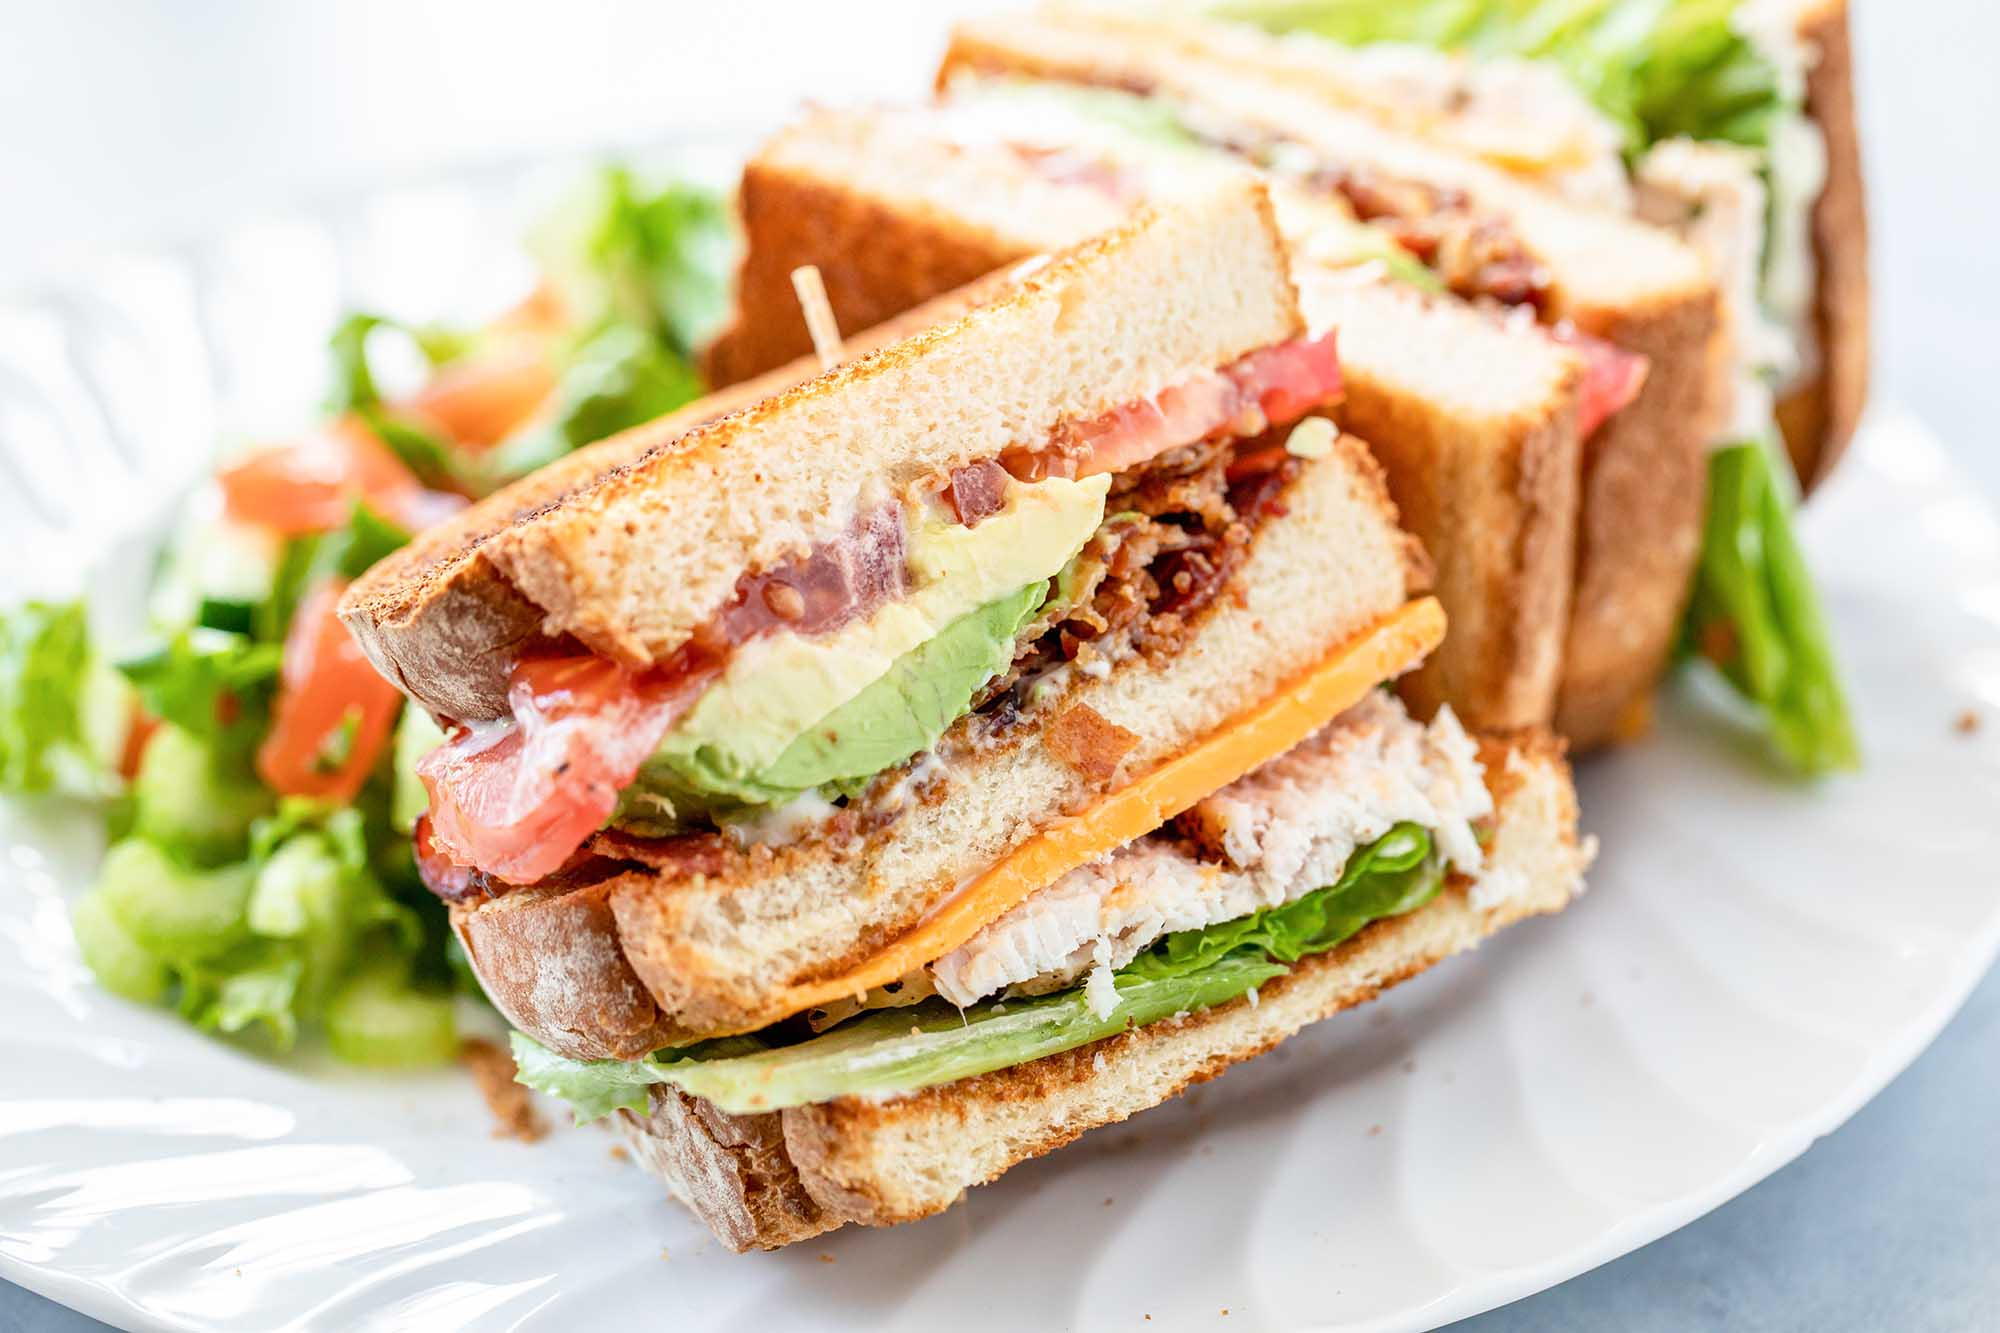 Side view of turkey club with garlic mayo on a plate. The bread is toasted and the mayo, avocado, bacon, tomato, lettuce and turkey are visible in the sandwich.